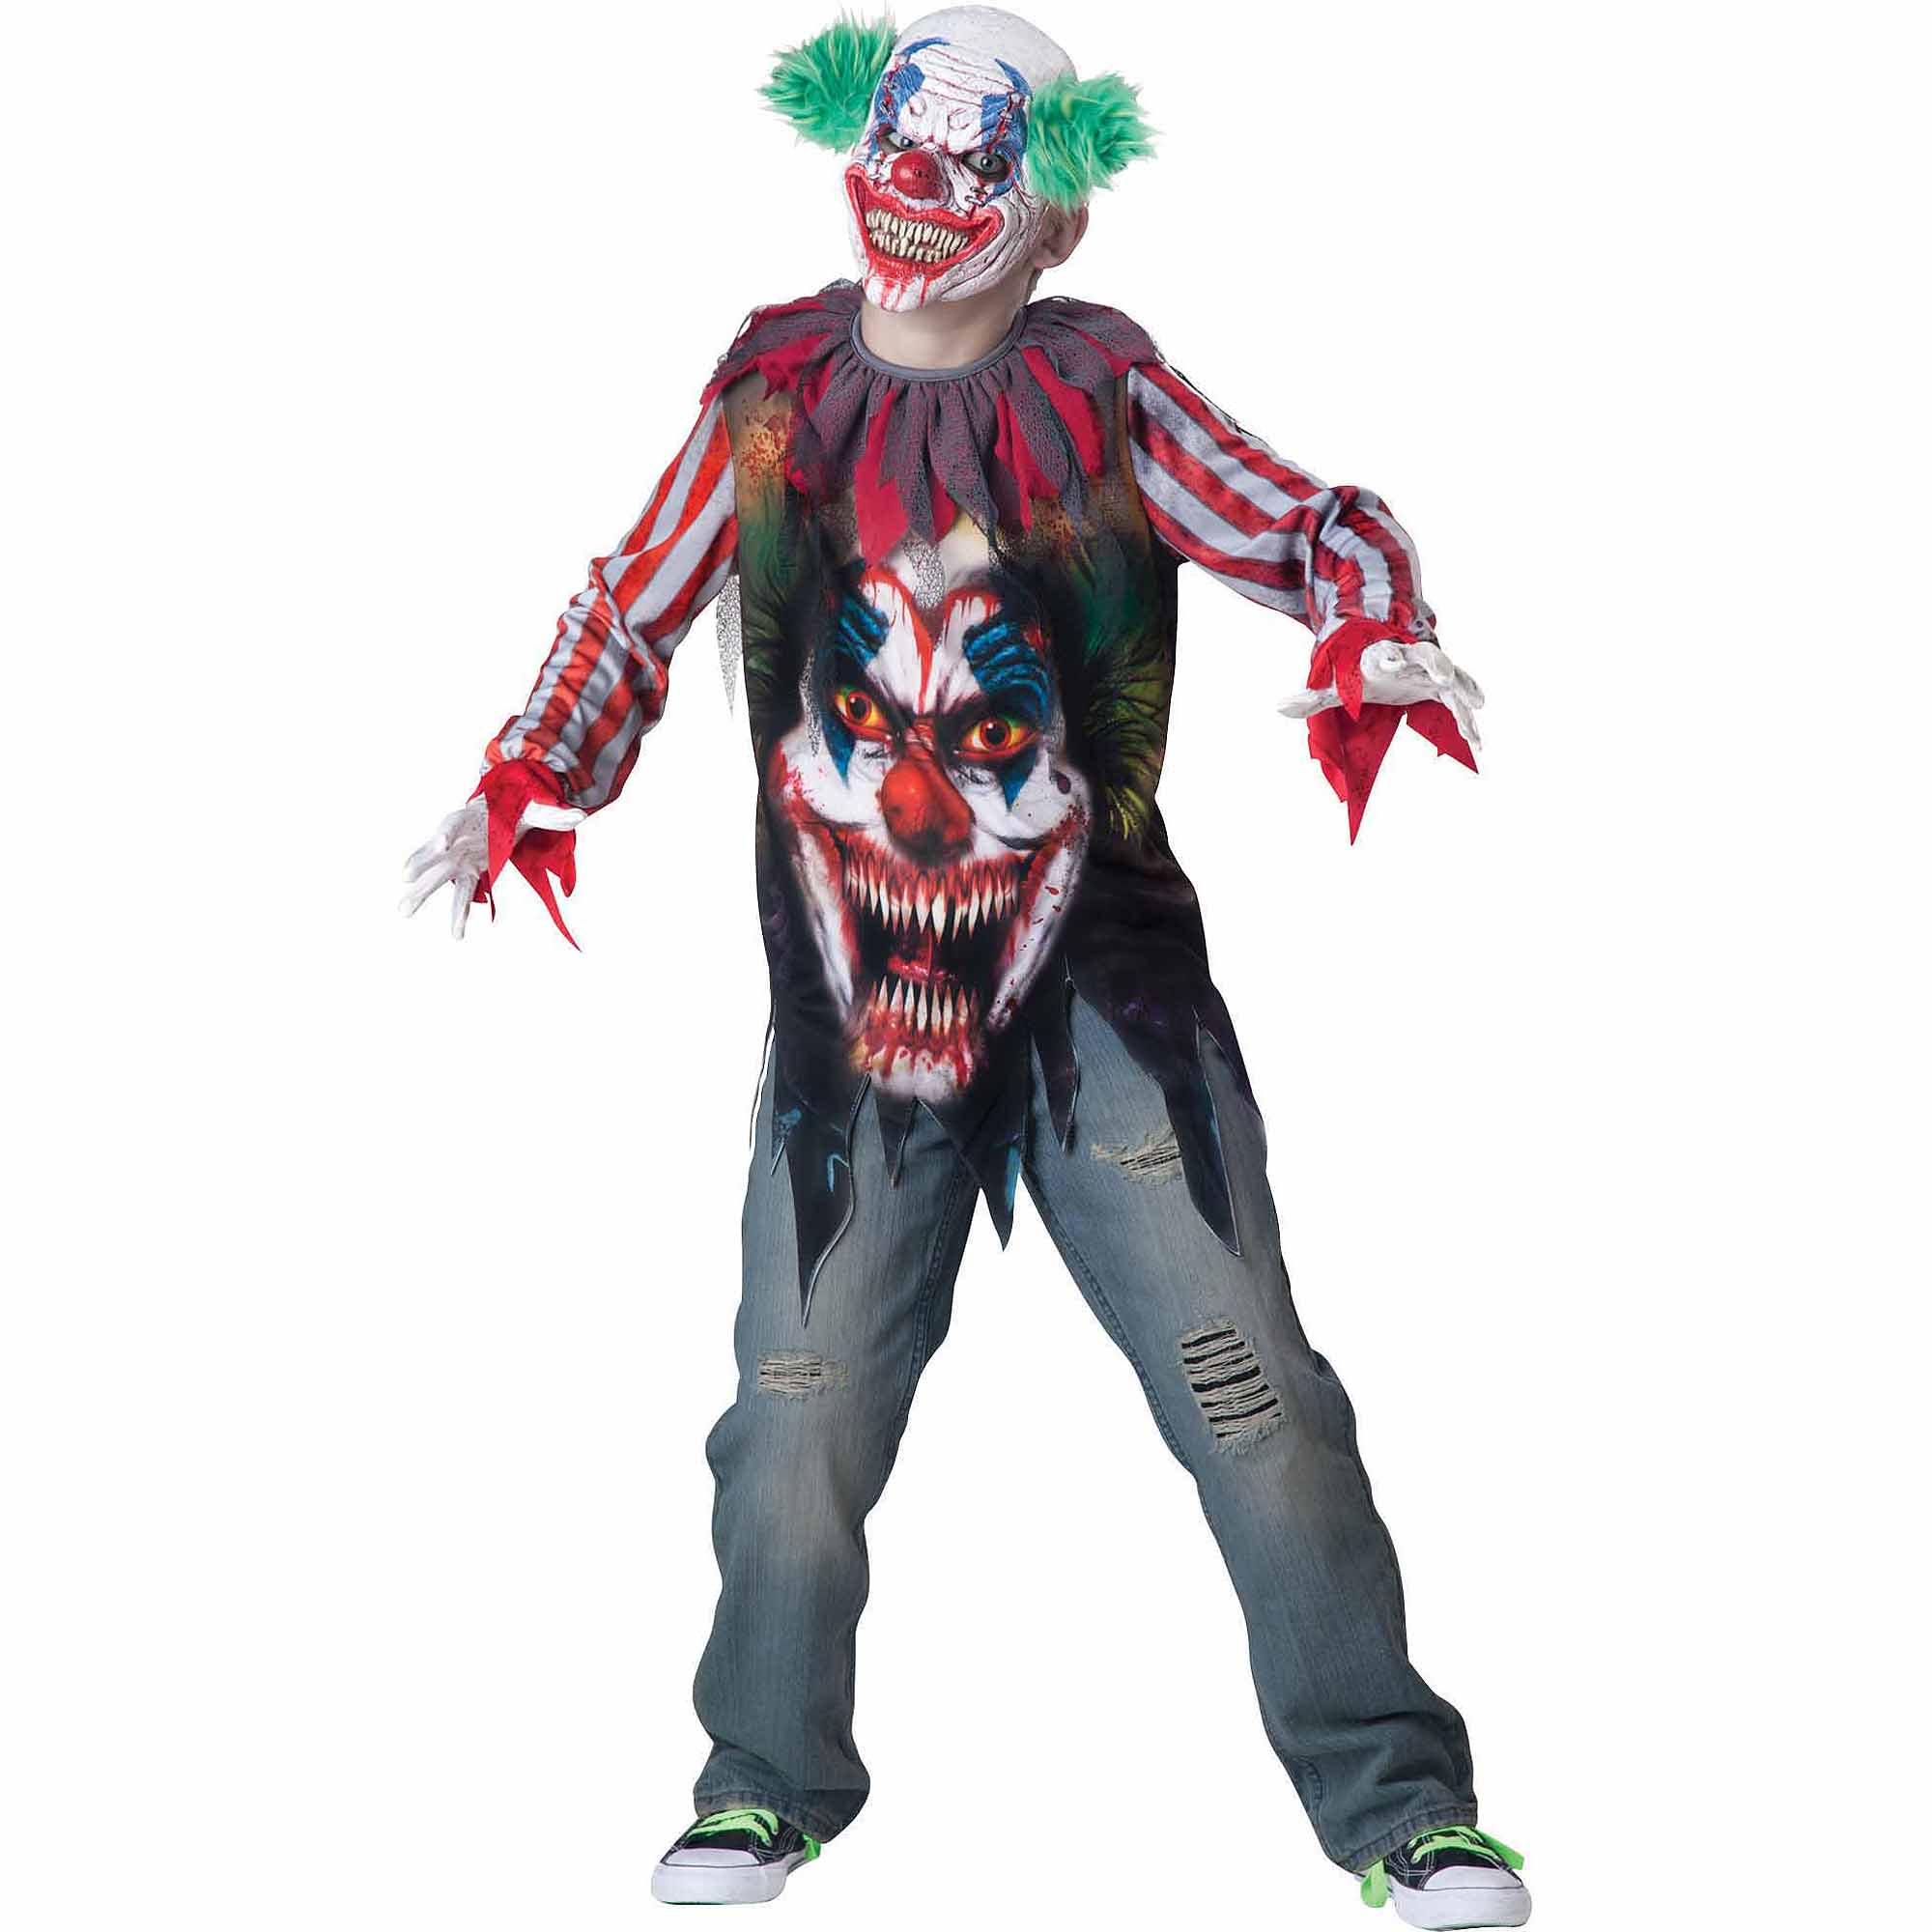 Big Top Terror Child Halloween Costume  sc 1 st  Walmart & Big Top Terror Child Halloween Costume - Walmart.com